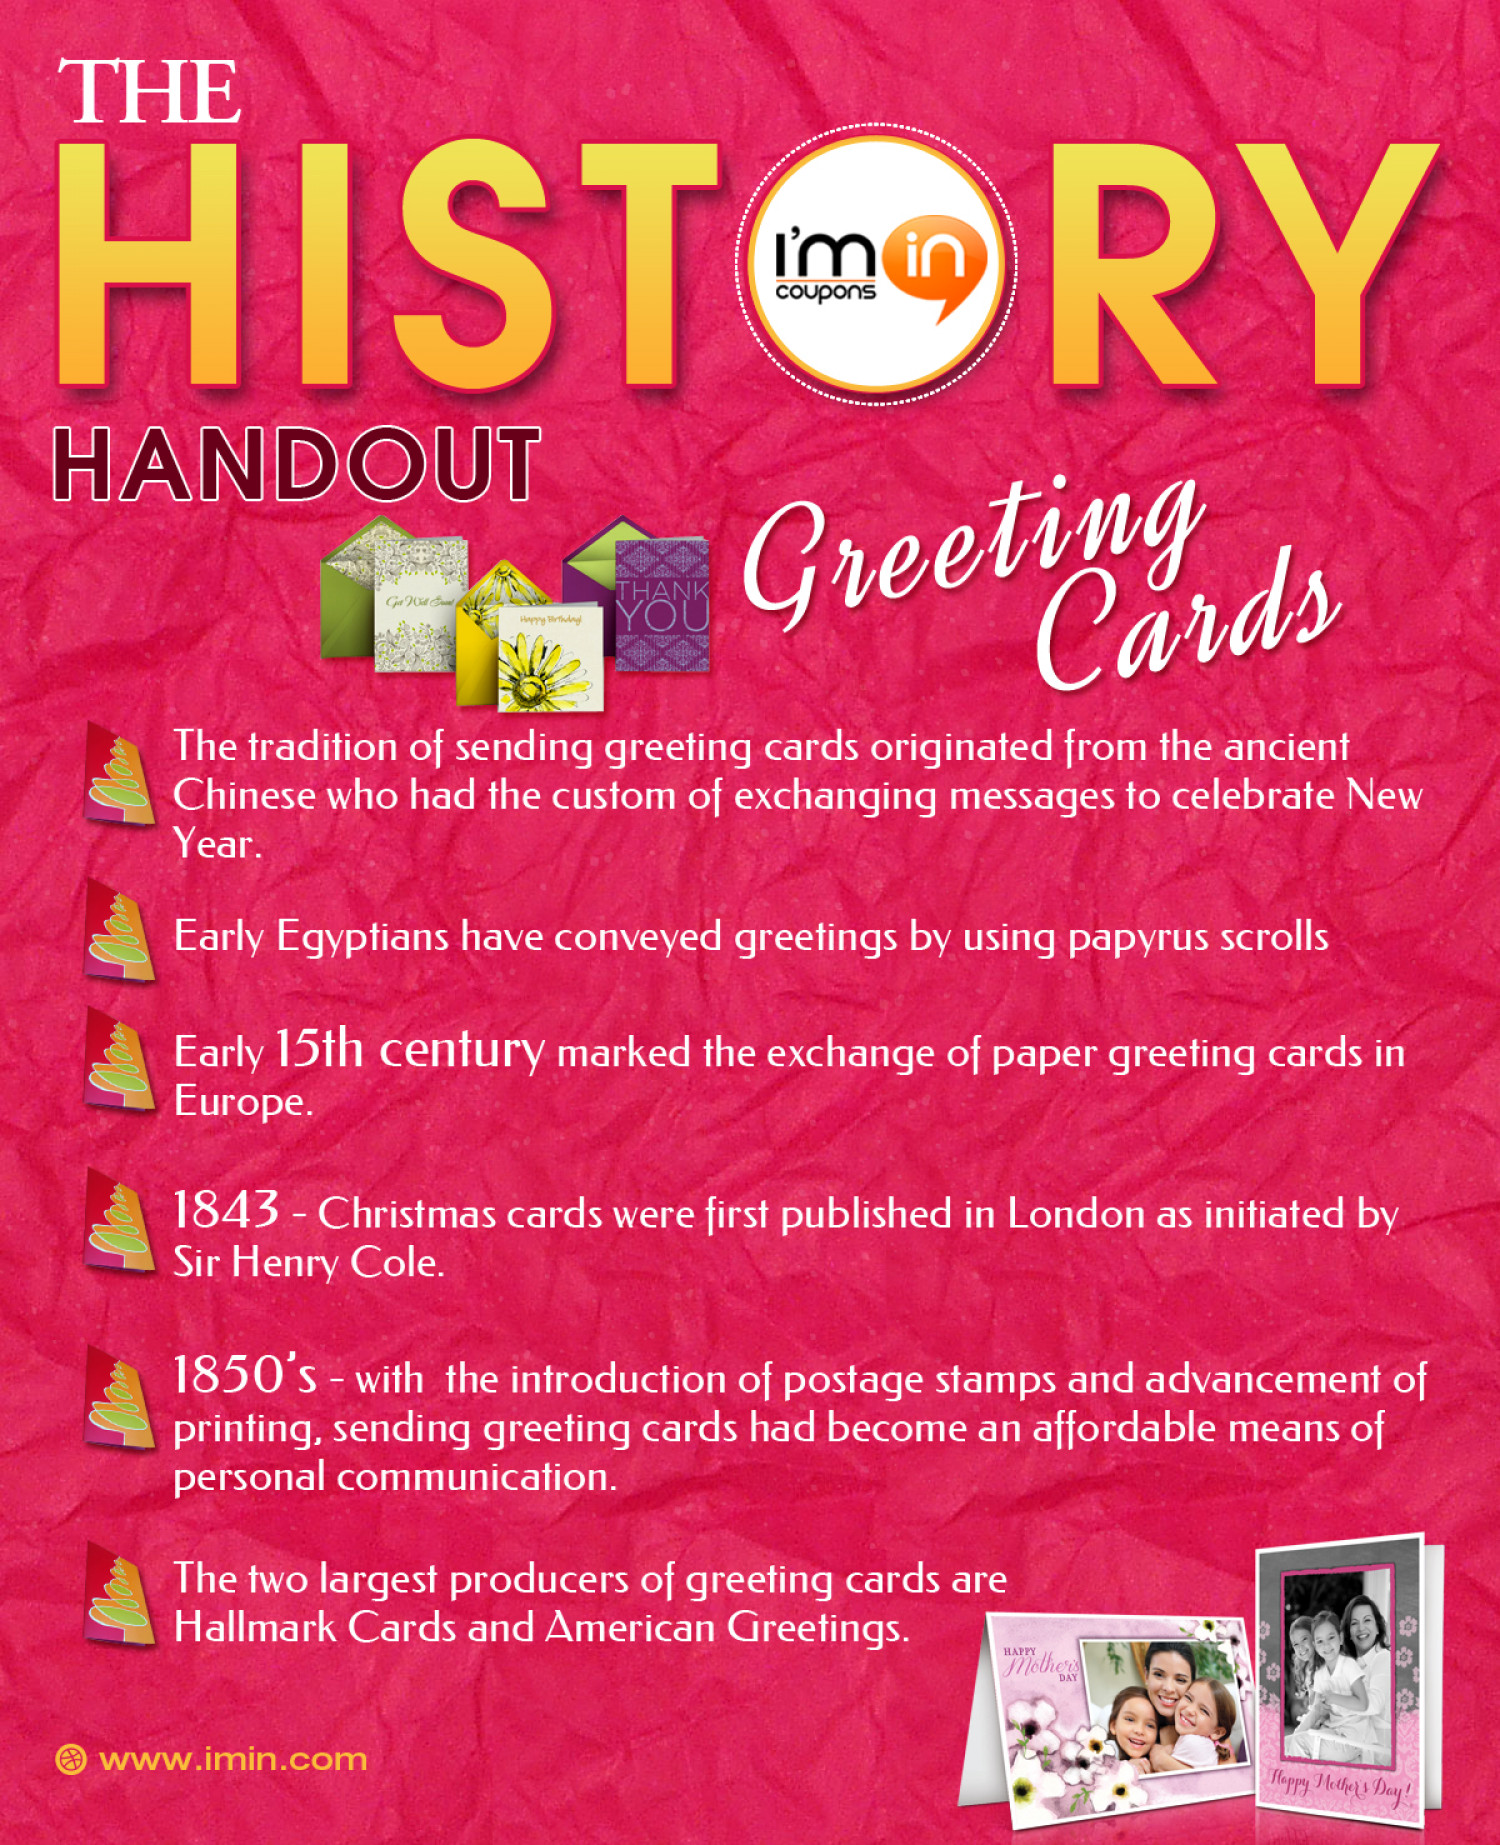 The History Handout - Greeting Cards